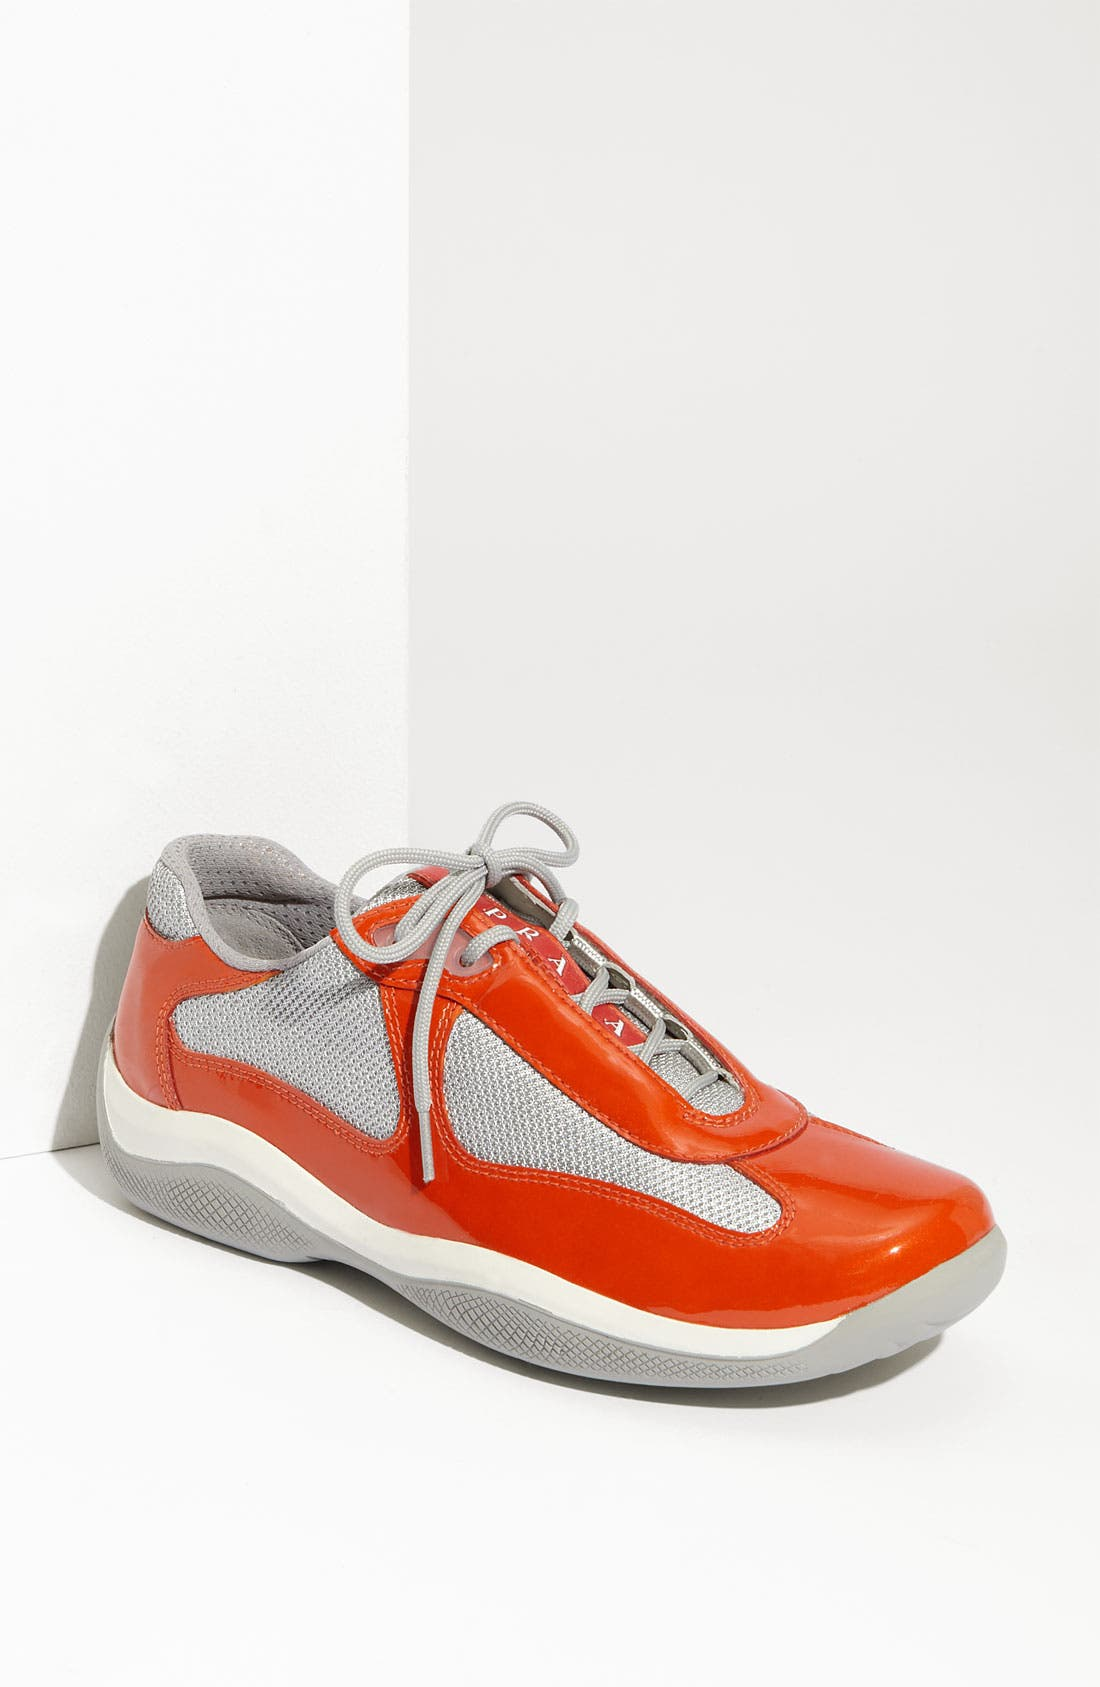 Main Image - Prada Patent Leather & Mesh Sneaker